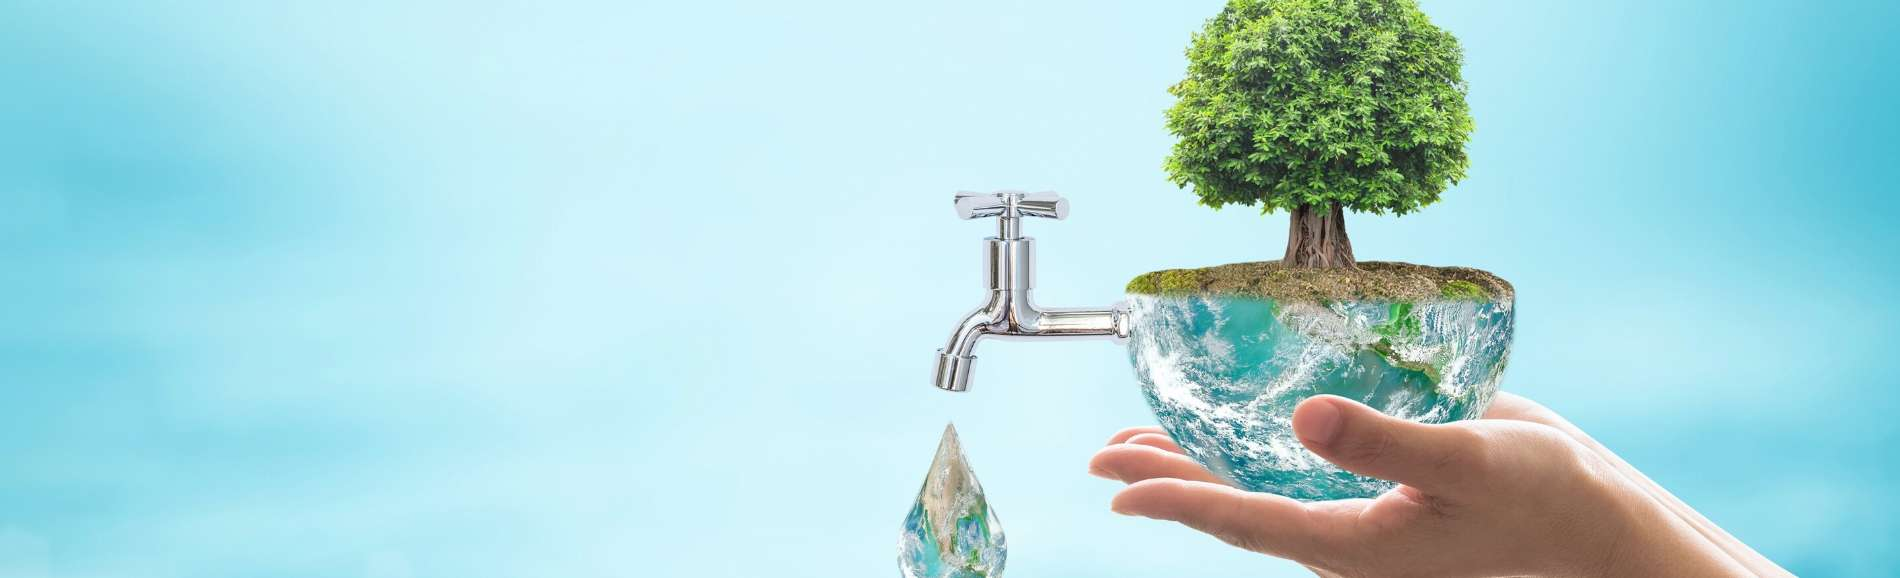 image of tree in a bowl of water with a tap attached